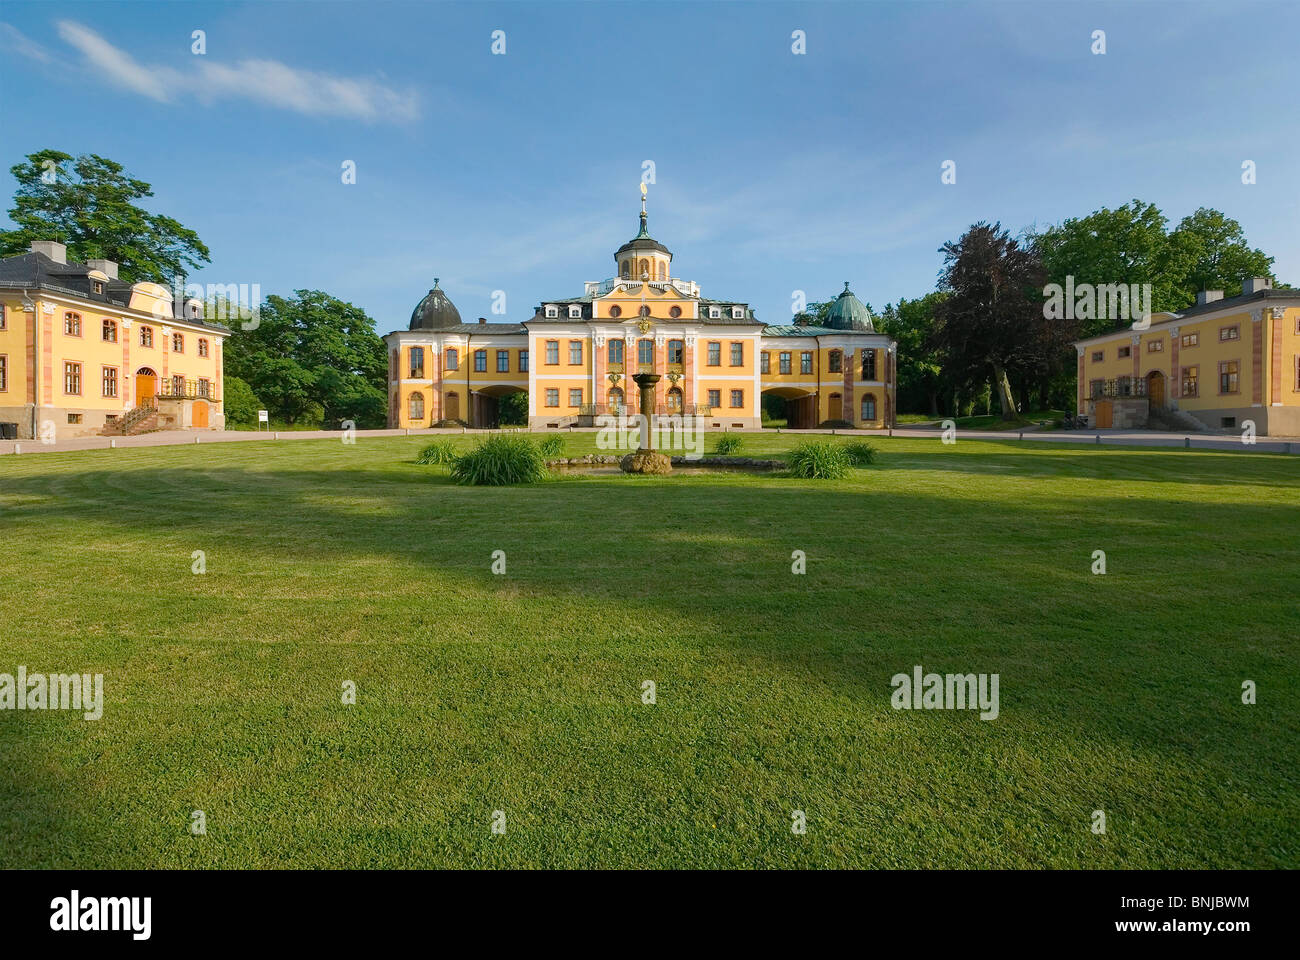 Germany Thuringia Weimar UNESCO world cultural heritage baroque castle Belvedere Lustschloss Pleasure palace rococo museum Stock Photo